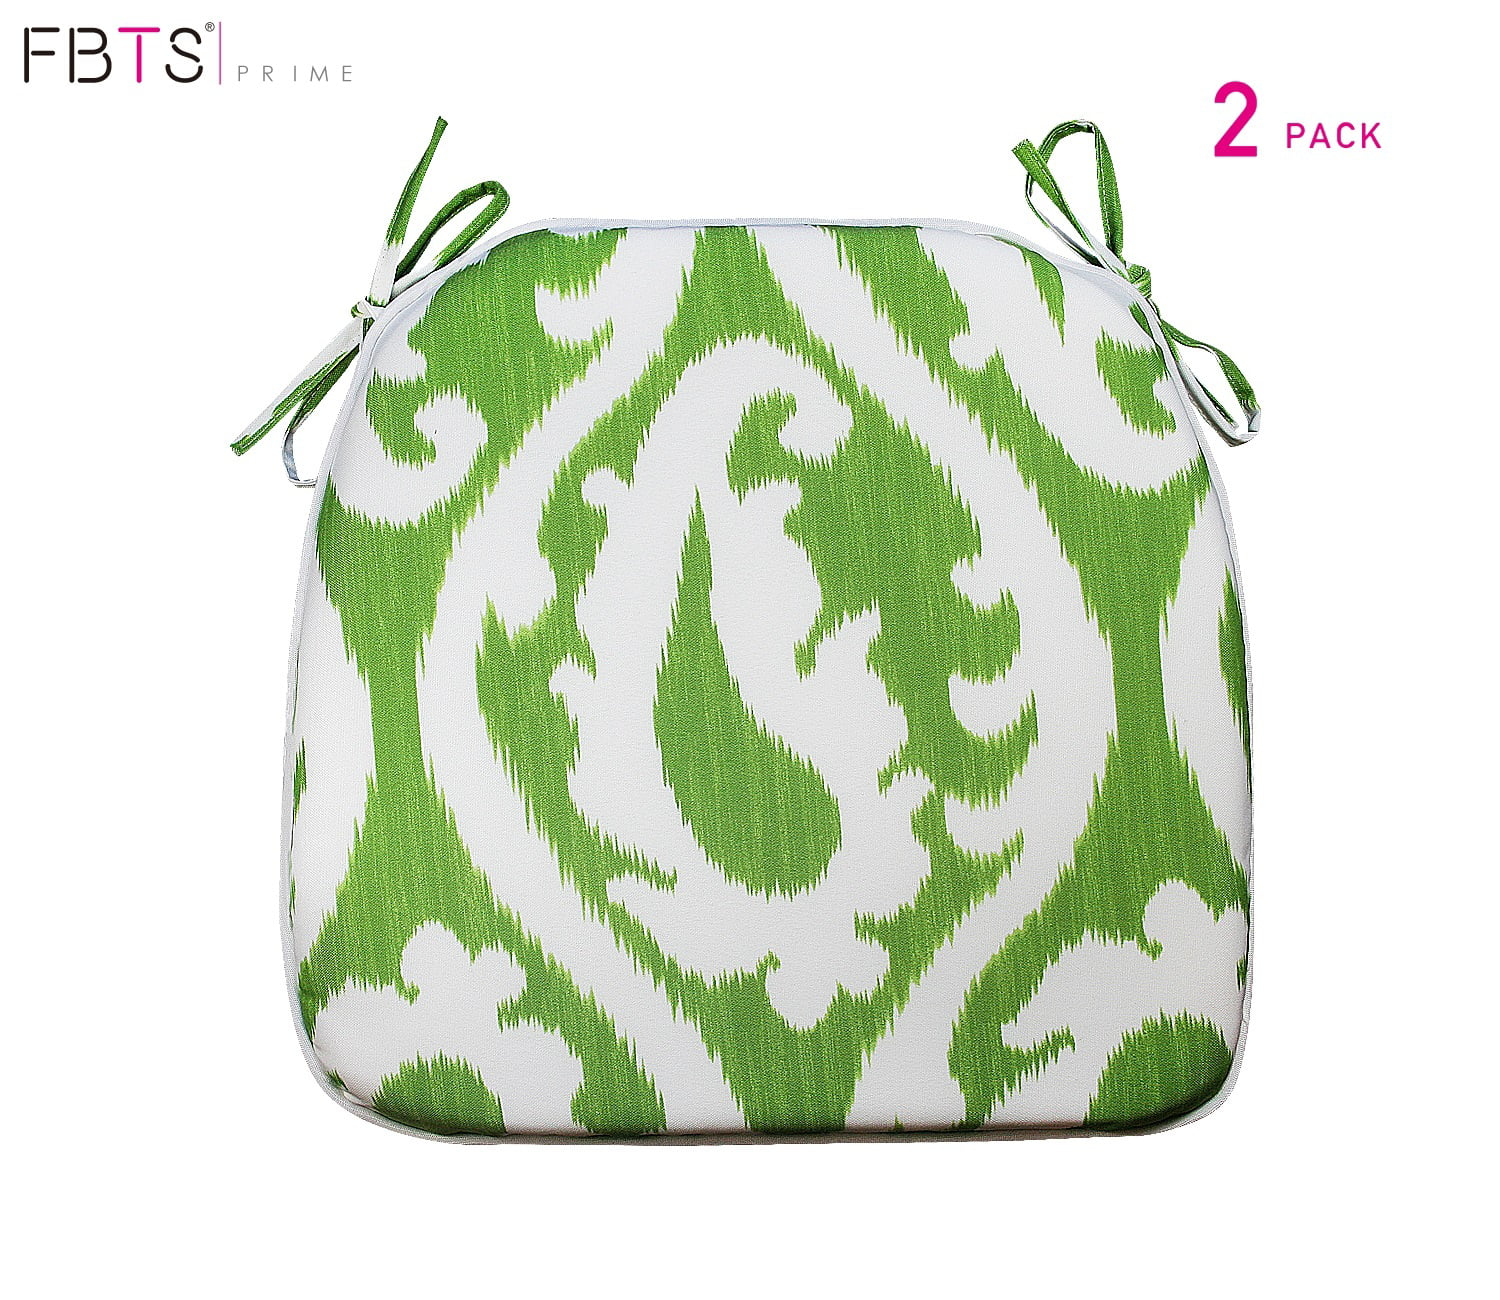 fbts prime outdoor chair cushion set of 2 16x17 inches patio seat cushions green square chair pads for outdoor patio furniture garden home office walmart com walmart com